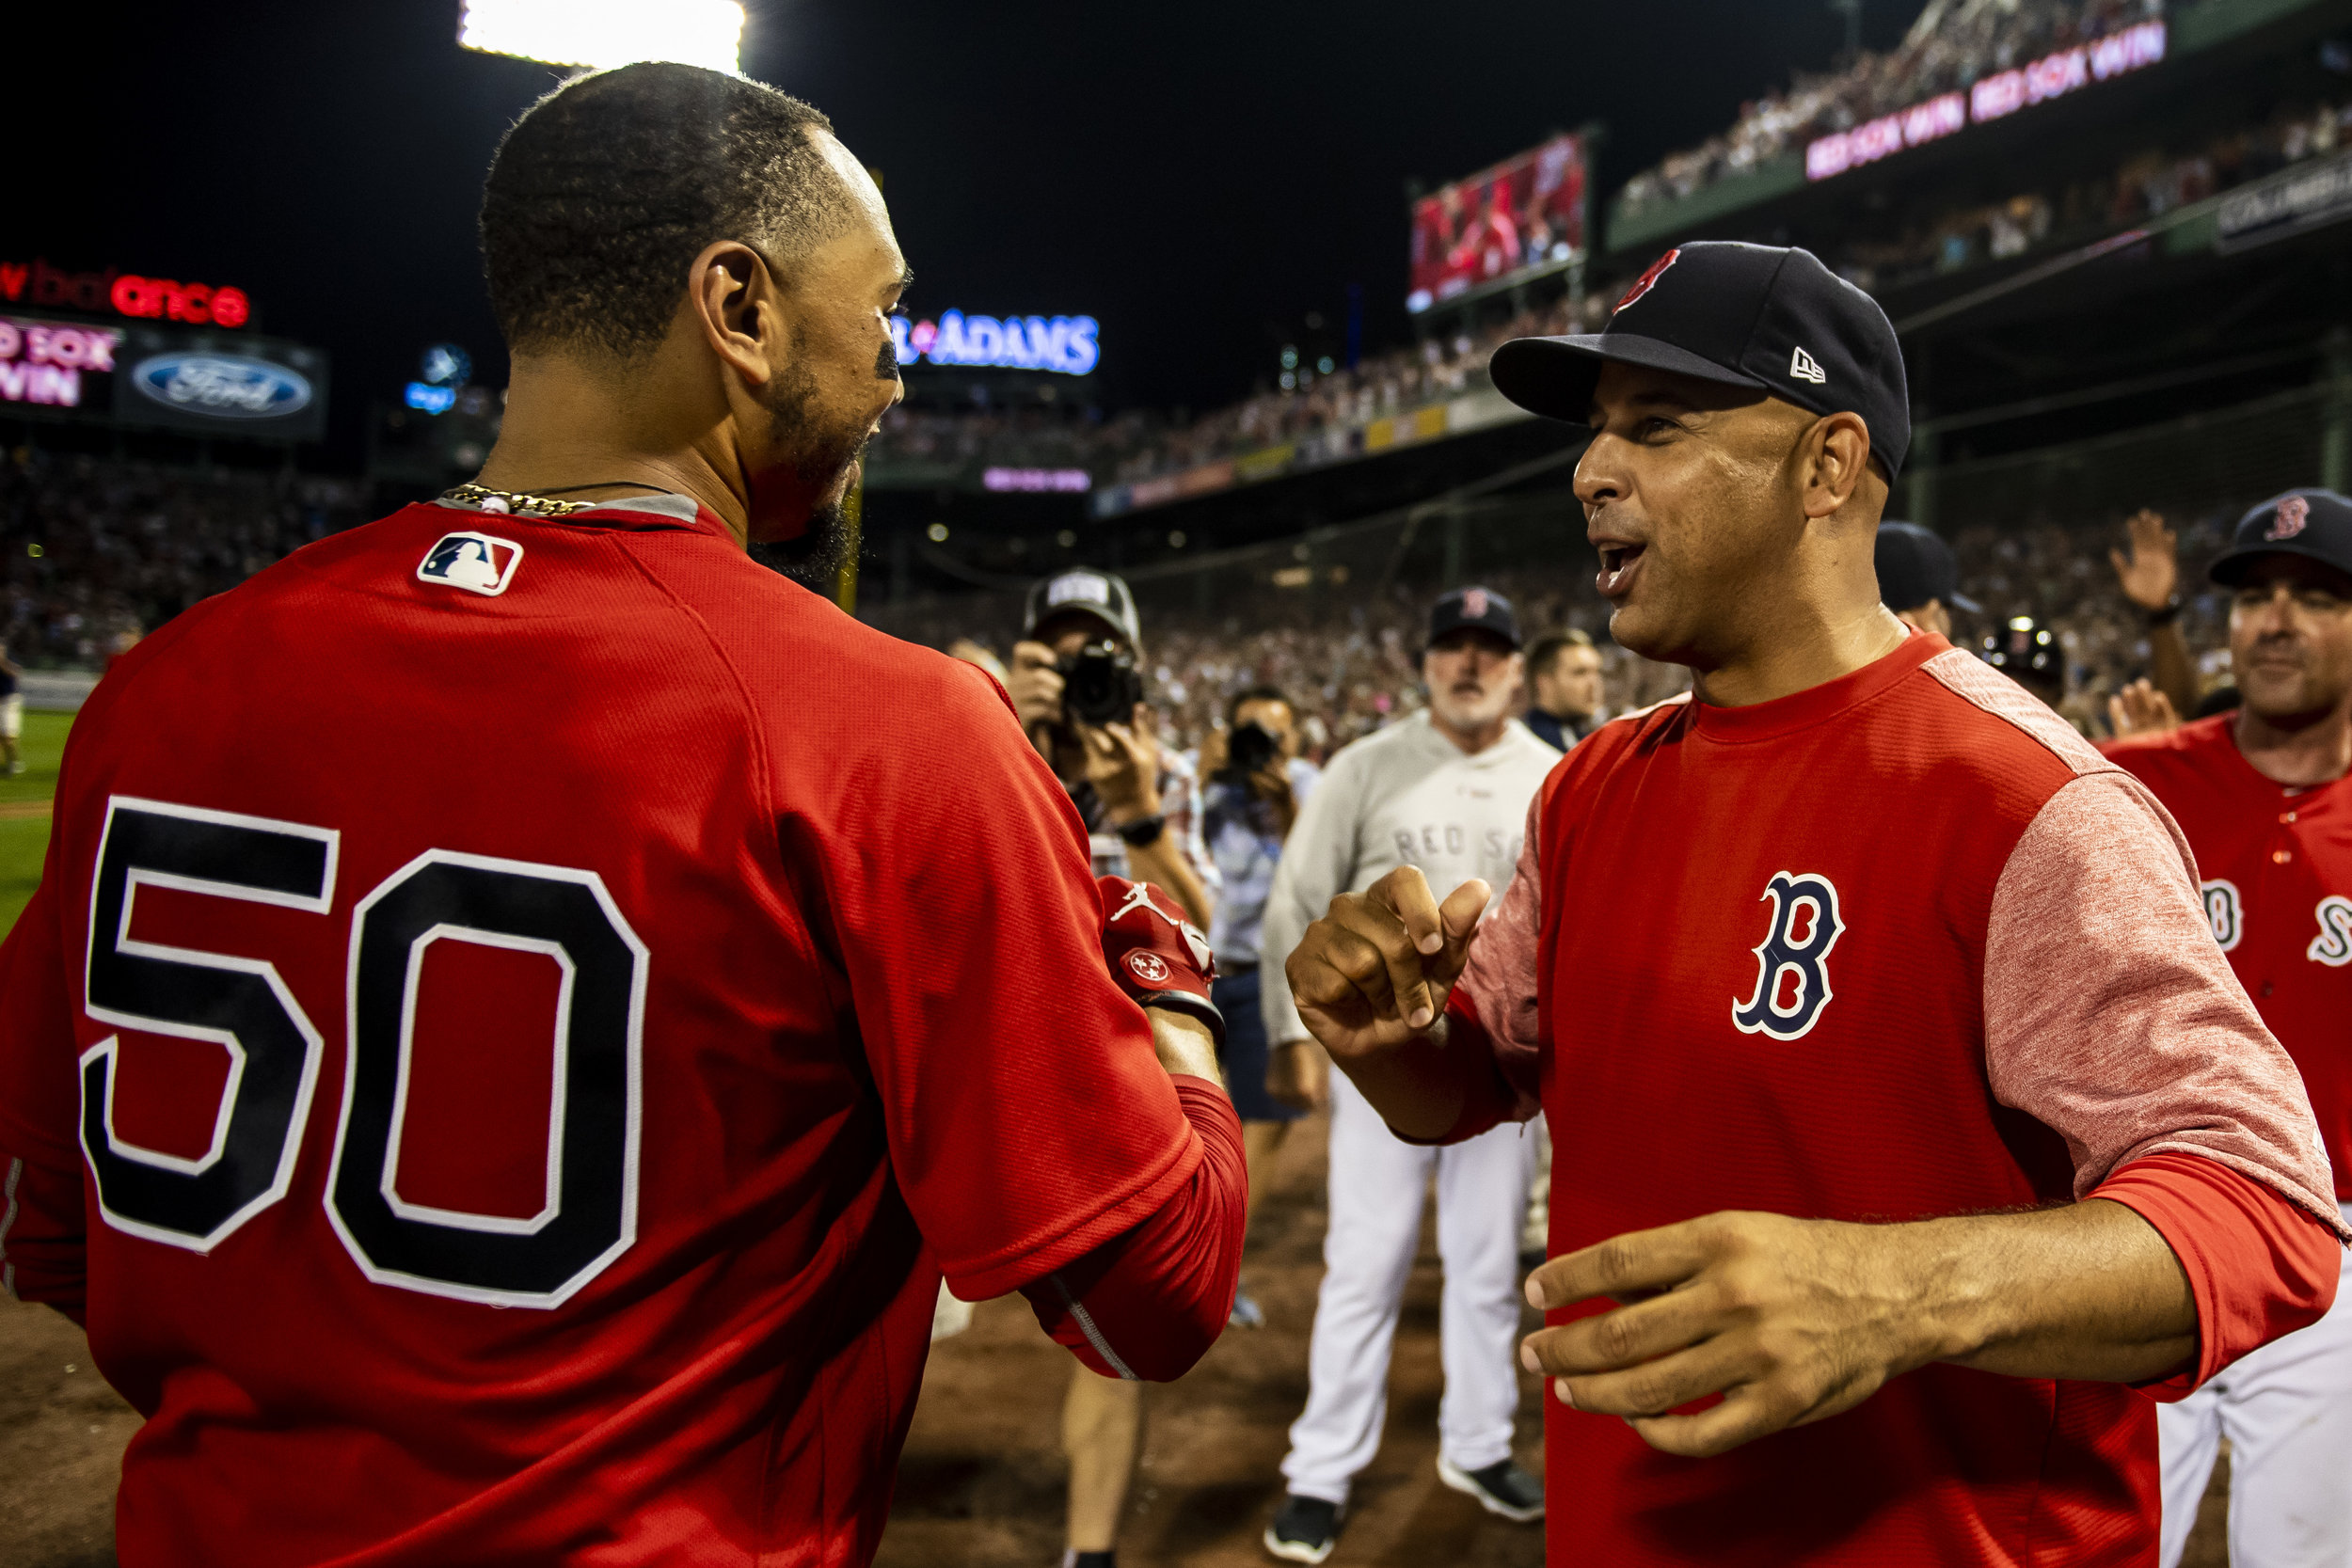 July 26, 2018, Boston, MA: Boston Red Sox outfielder Mookie Betts and Manager Alex Cora celebrate after Betts hits the walk-off home run as the Boston Red Sox defeated the Minnesota Twins at Fenway Park in Boston, Massachusetts on Friday, July 27, 2018. (Photo by Matthew Thomas/Boston Red Sox)